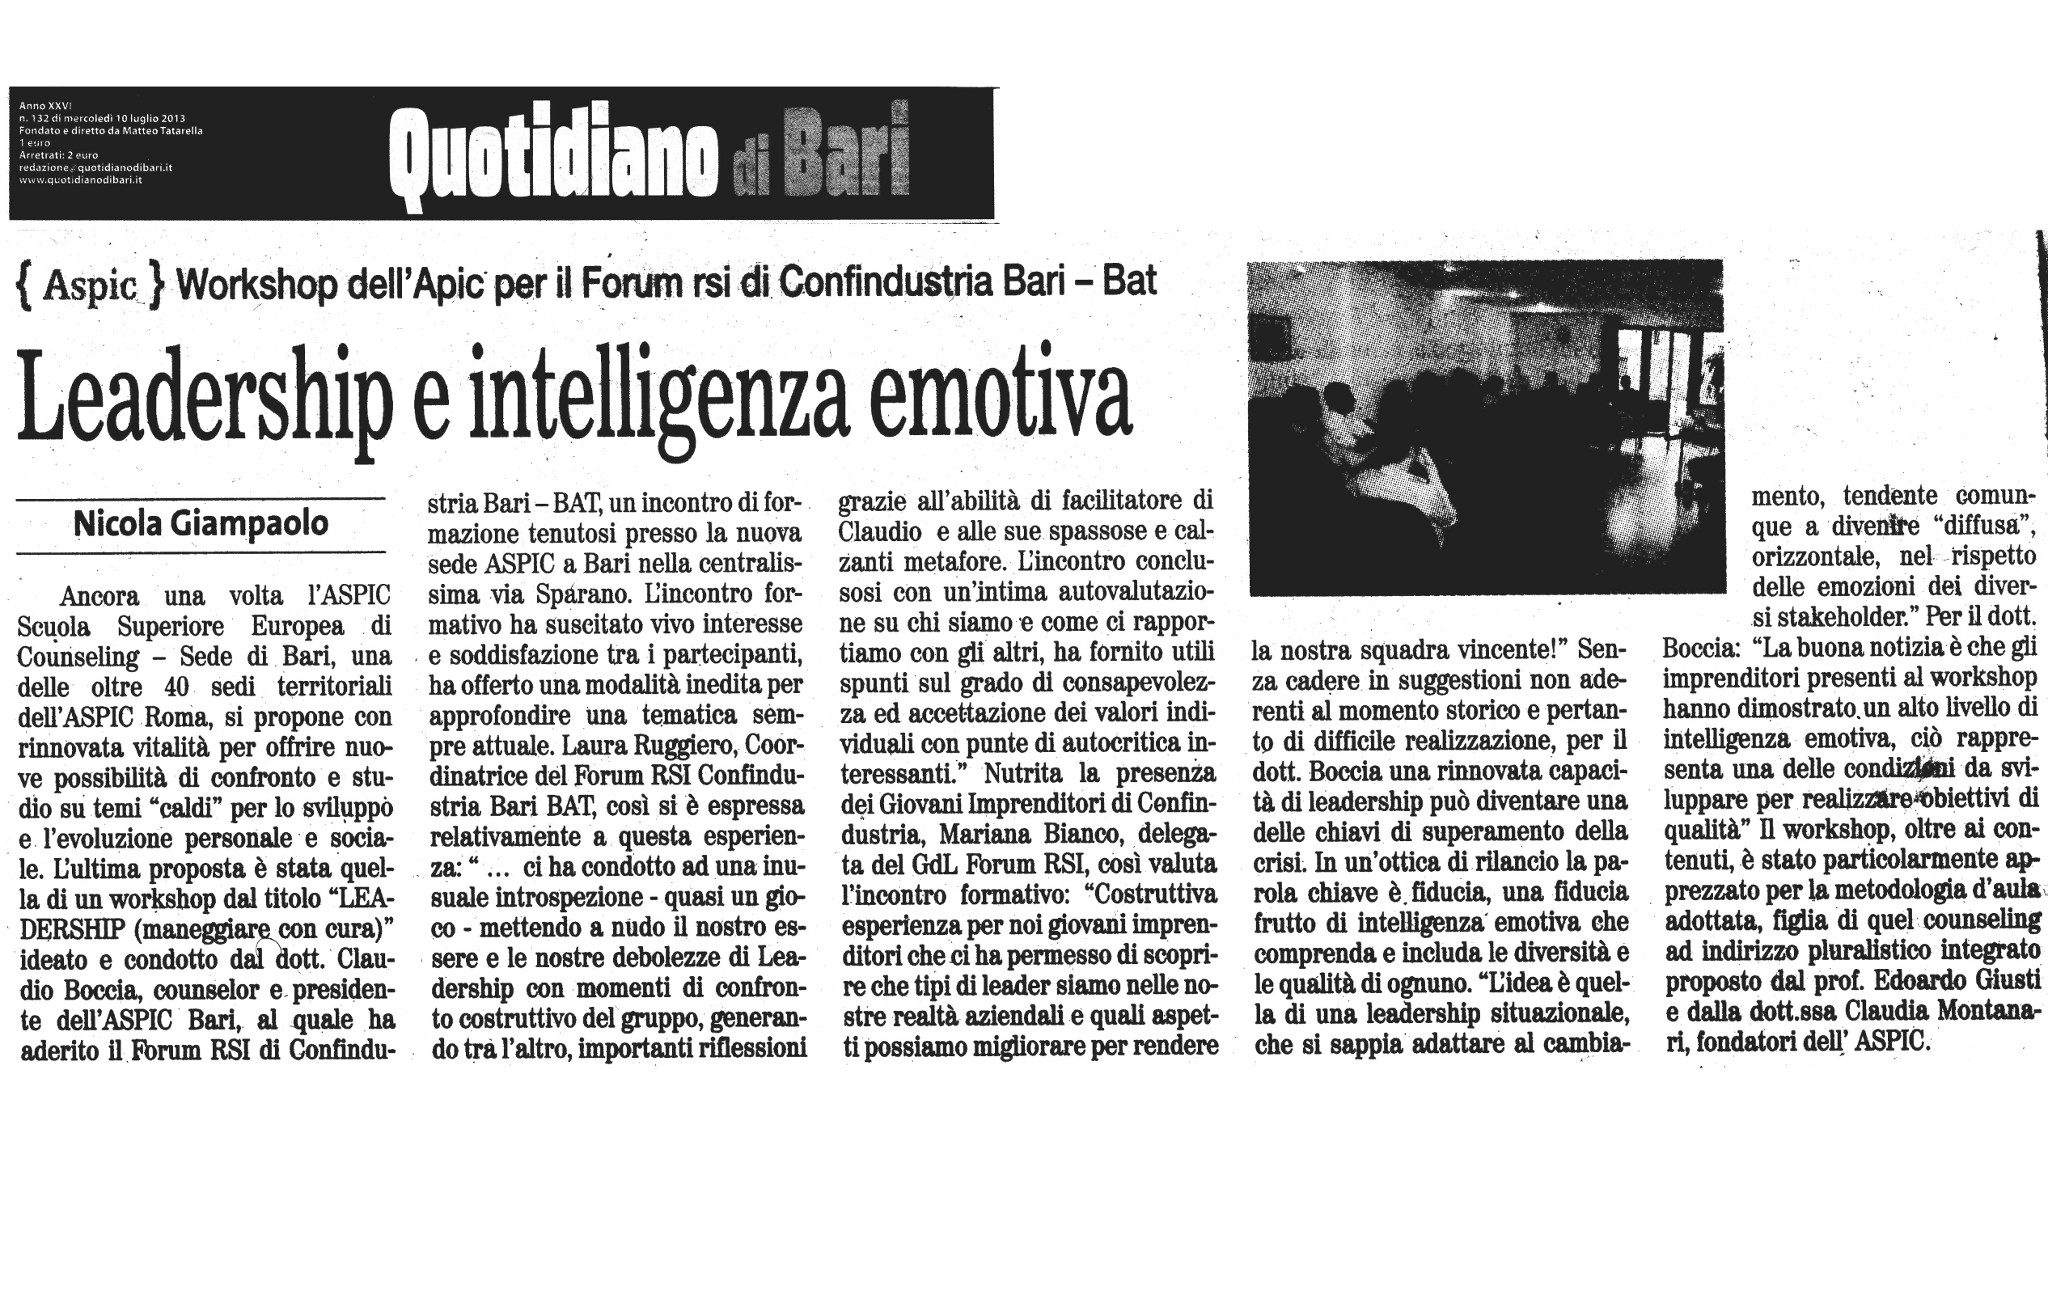 Leadership e Intelligenza emotiva